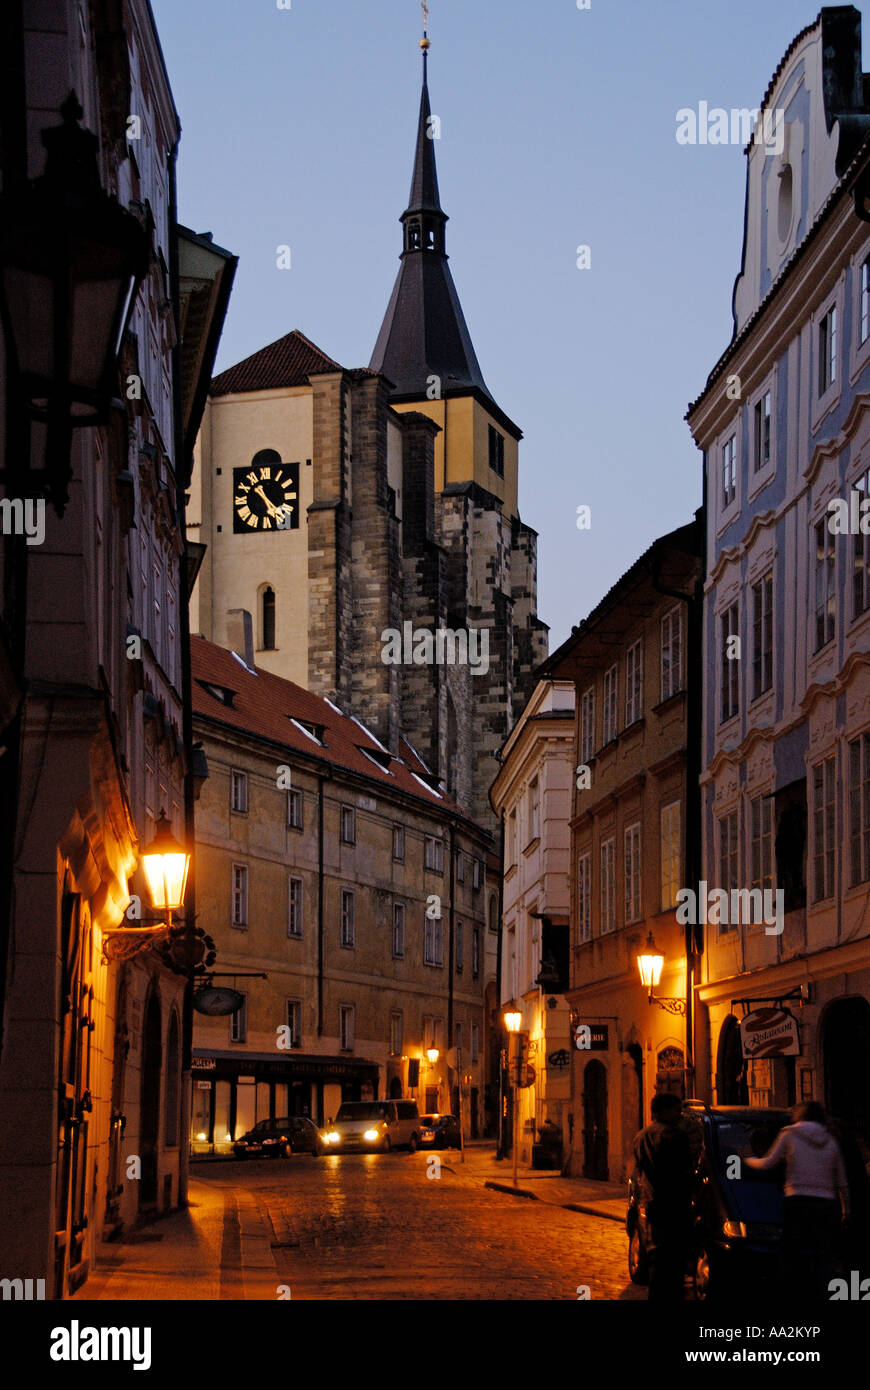 Early Morning near Stare Mesto, Prague, Czech Republic - Stock Image